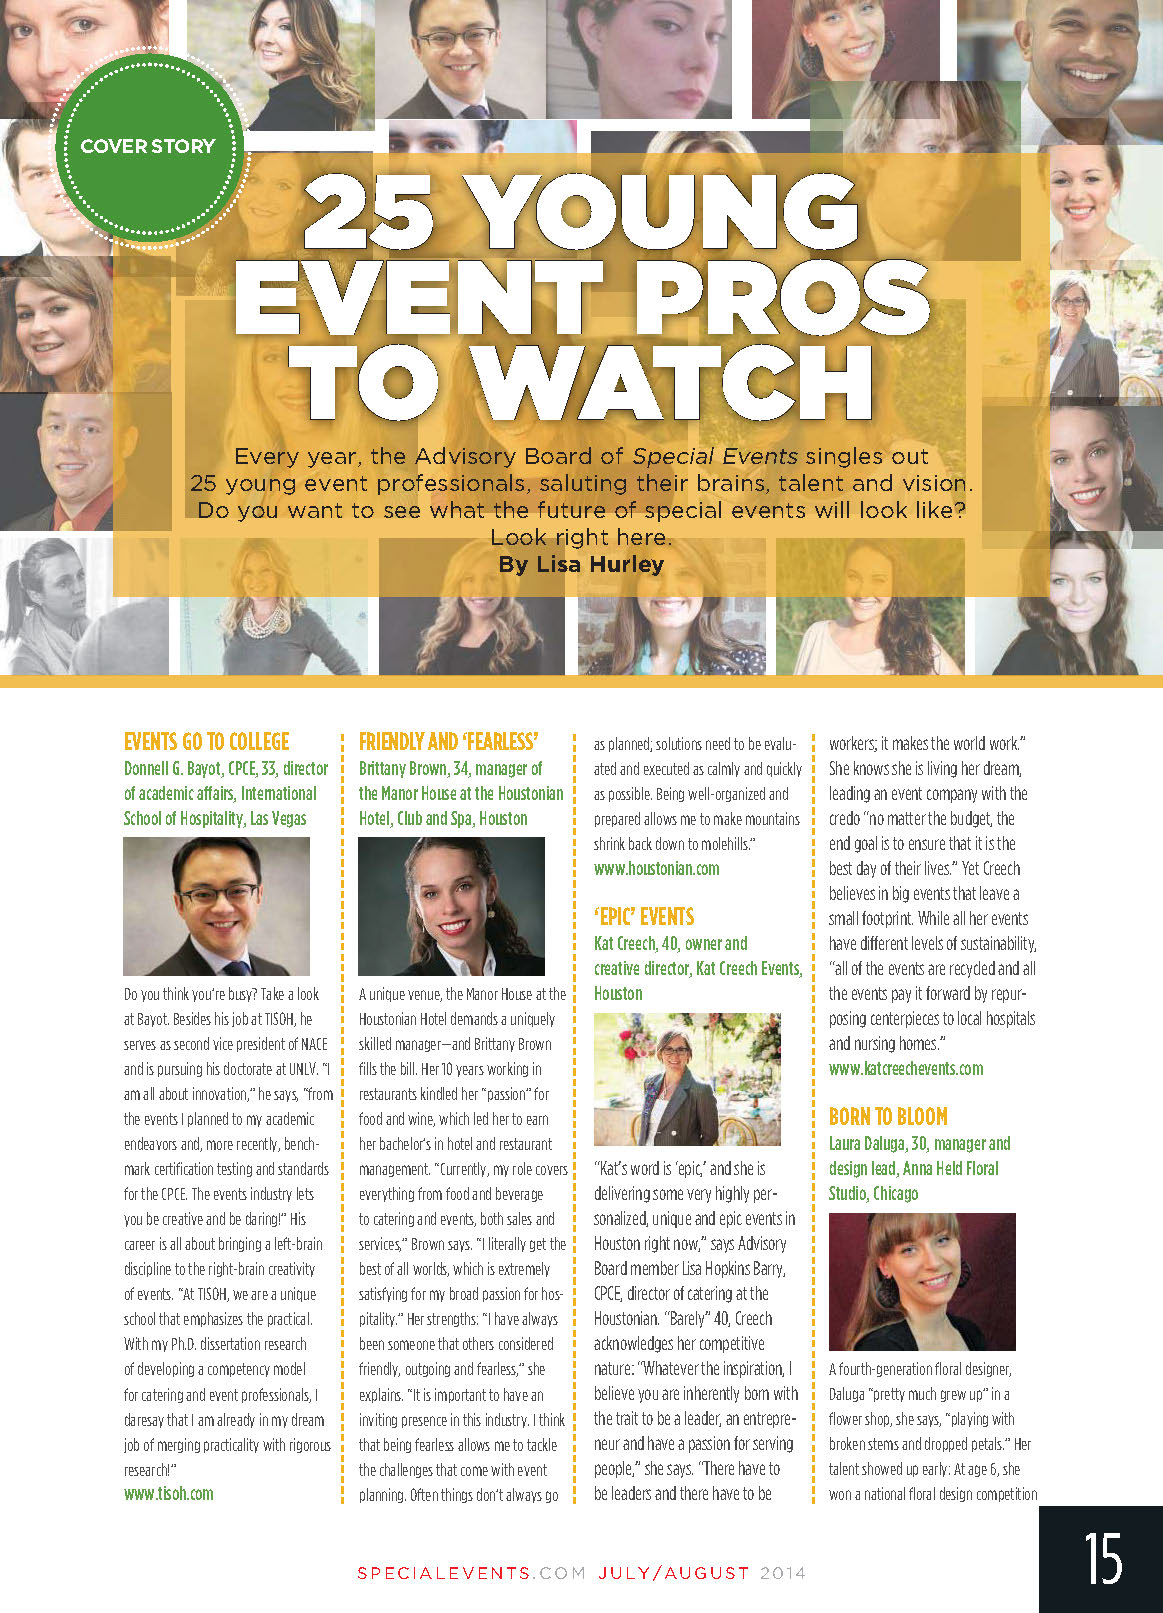 Kat Creech Named Top 25 Event Professionals by Special Events